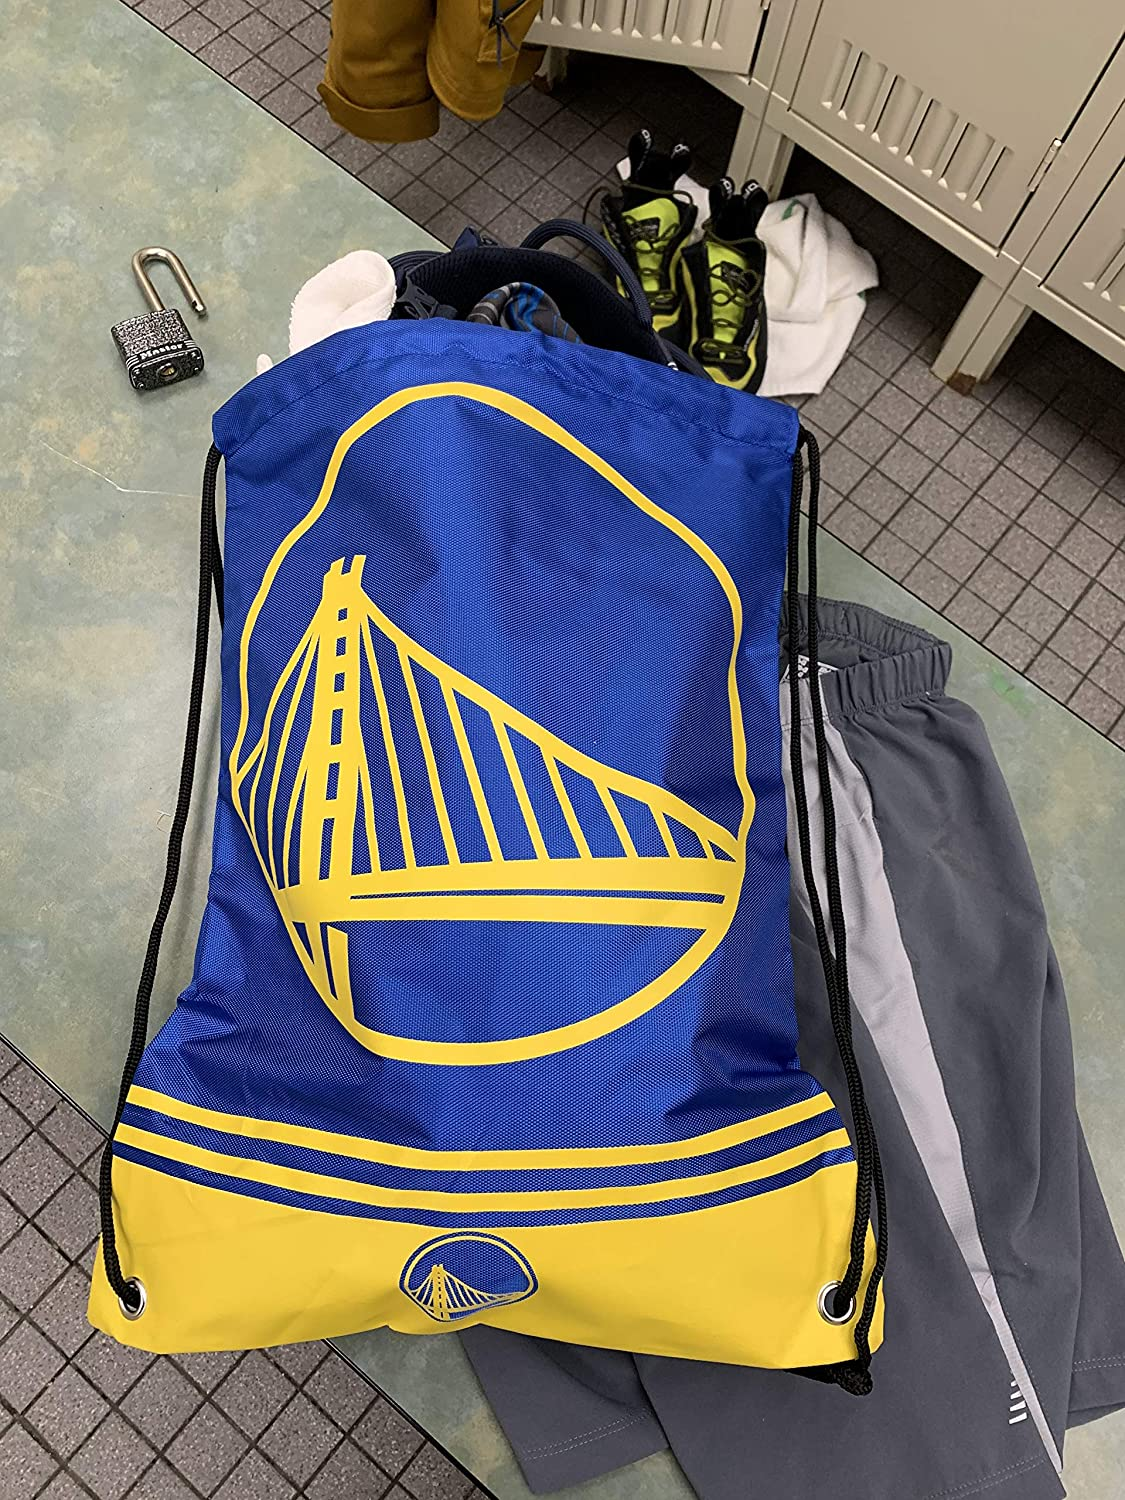 Show Your Team Spirit with Officially Licensed Golden State Fan Gear NBA Gear for The Western Conference Limited Edition FOCO Big Logo Drawstring Backpack